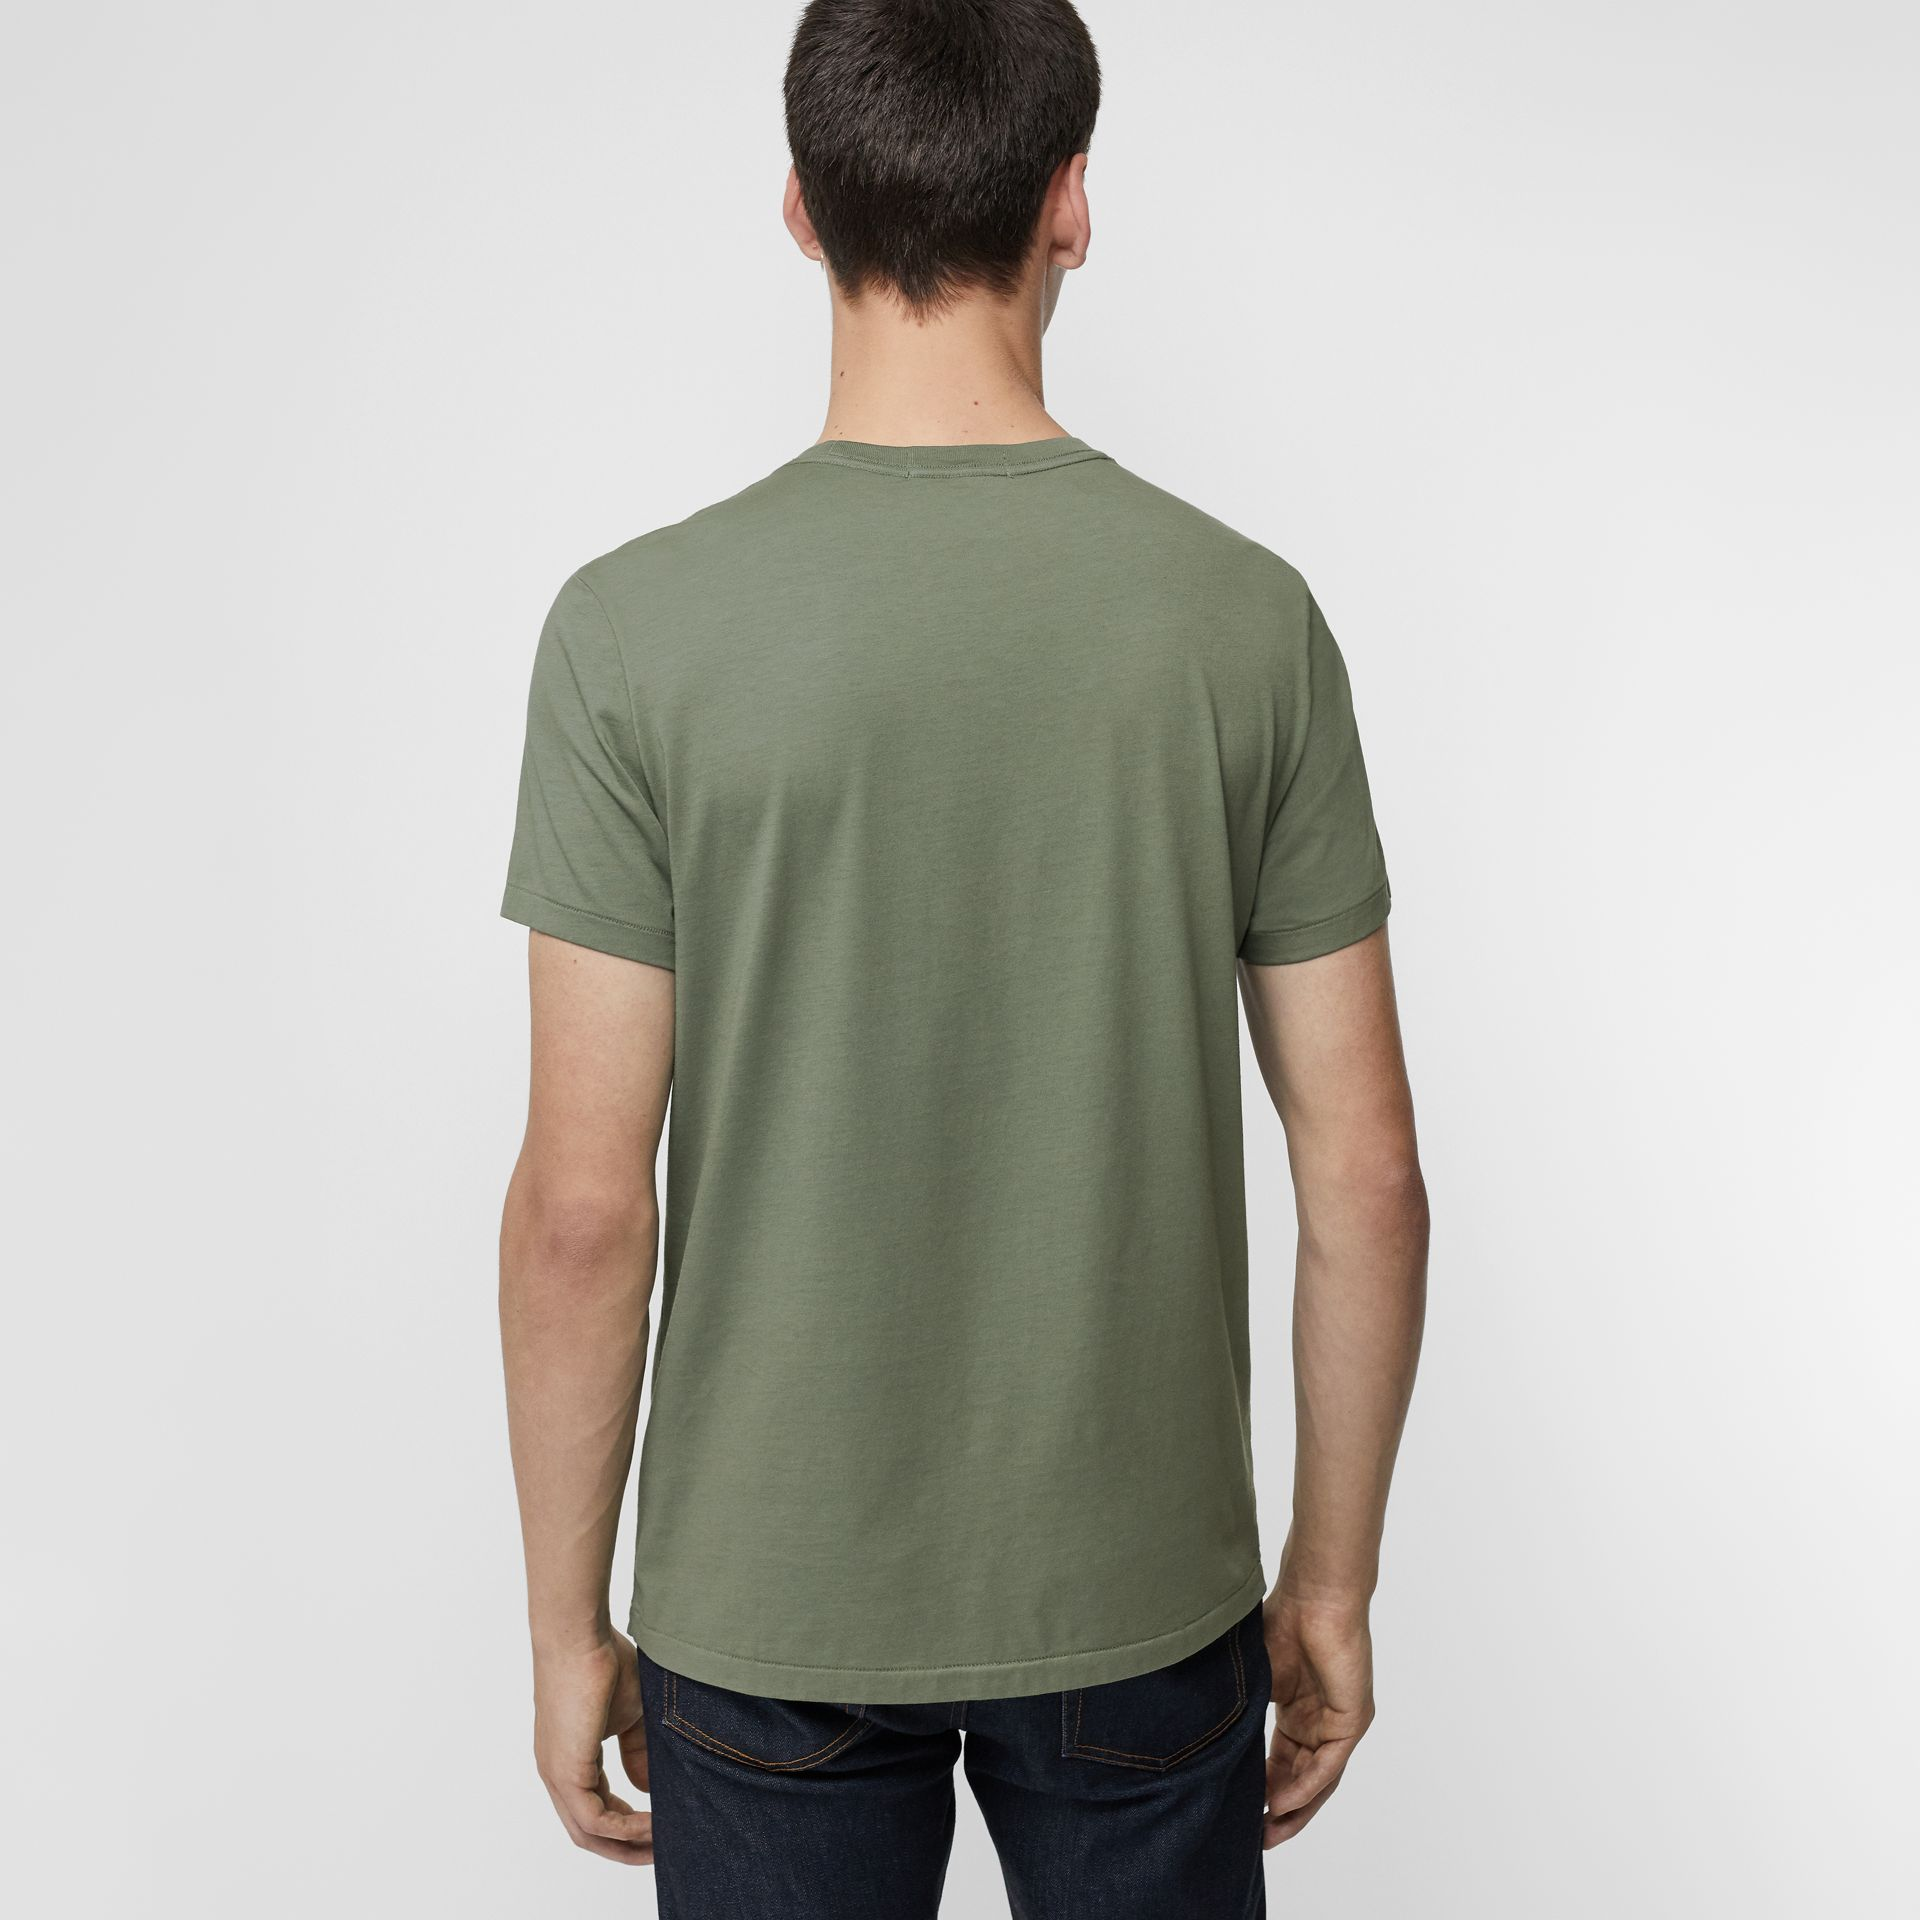 Cotton T-shirt in Clay Green - Men | Burberry - gallery image 2